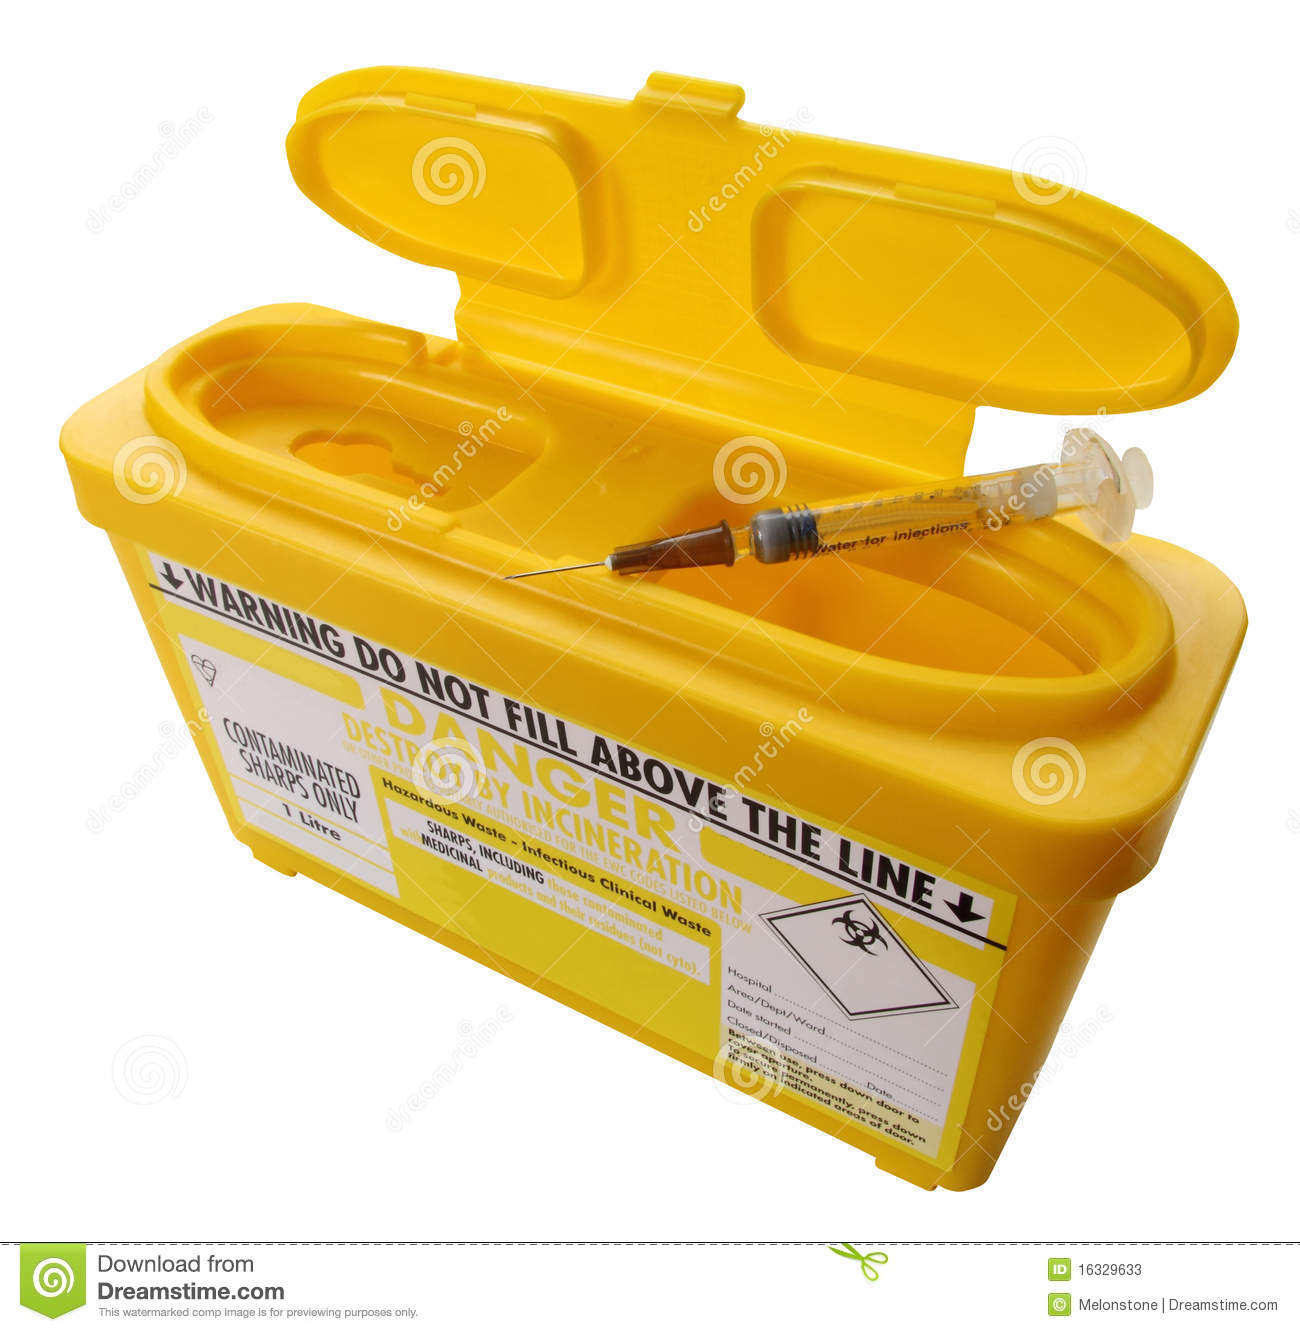 Wholesale Sharps Container moreover Safety Posters in addition Stock Photos Needle Stick Sharps Infection Risk Image16329633 further General Microbiology Spotters By Dr Sudheer Kher Md Hod Microbiology further How To Replace An Electric Oven Bake Element. on needle disposal